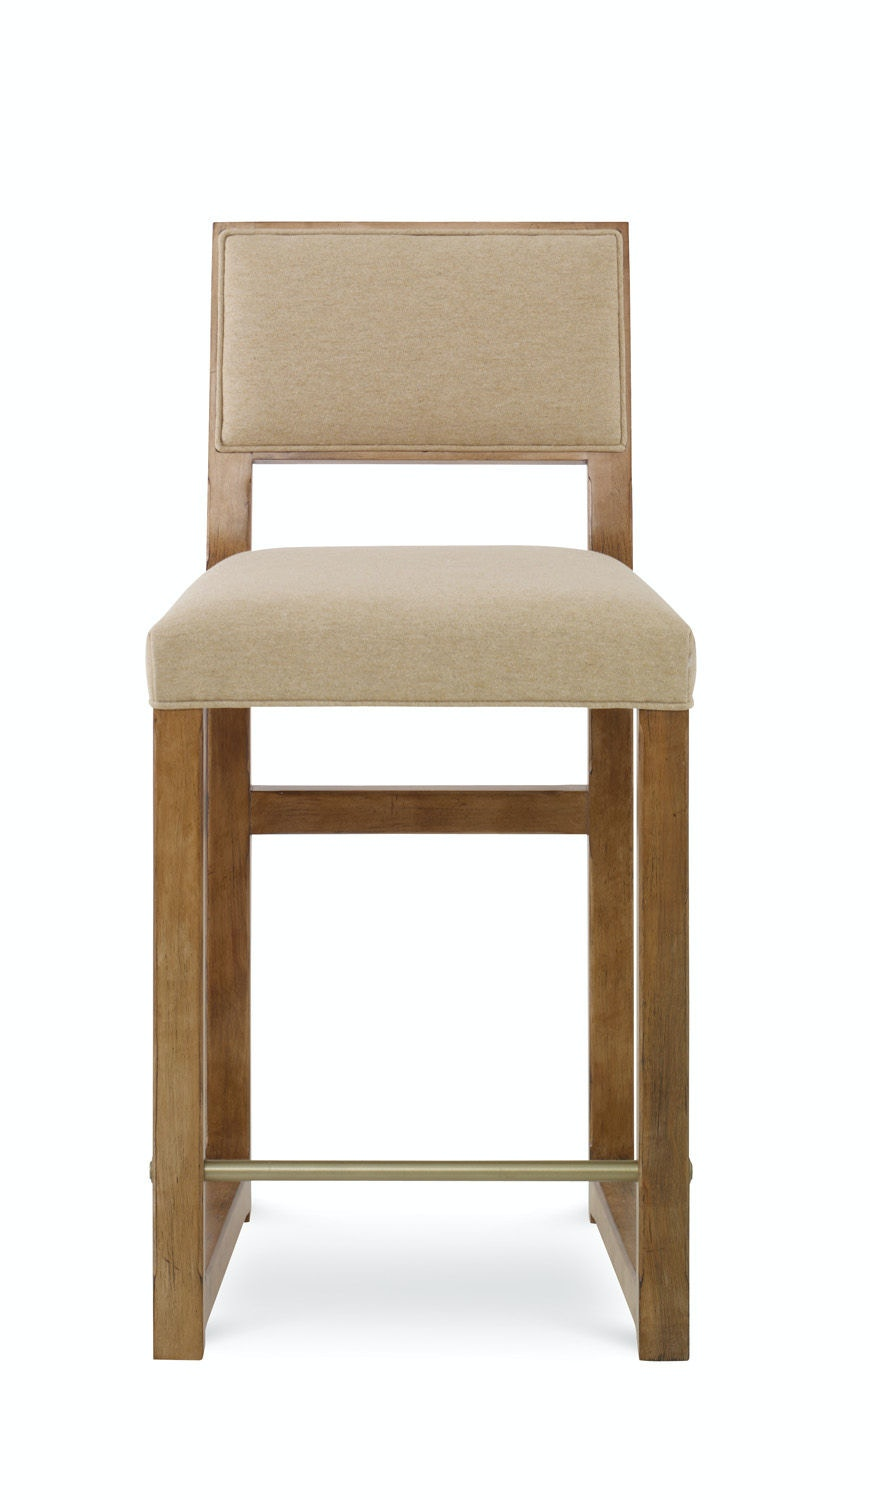 Kravet Dining Room Yately Bar Stool H3819 B Kravet New  : h3819c2 from search.kravet.com size 870 x 1500 jpeg 53kB